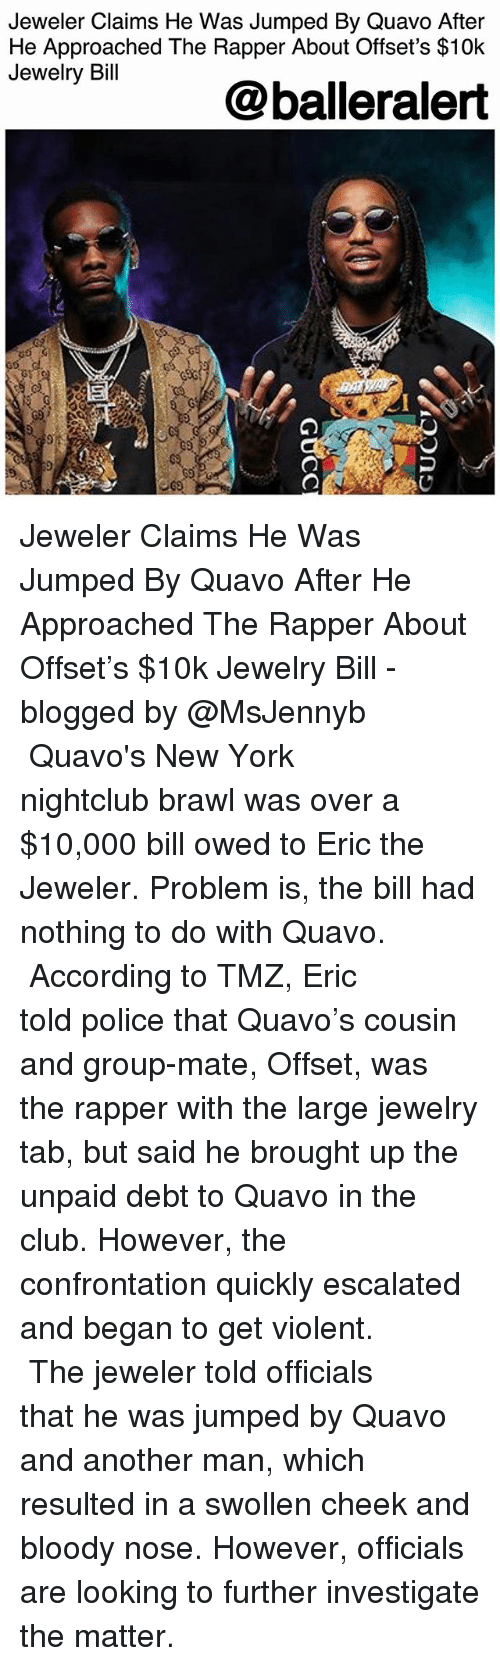 Club, Memes, and New York: Jeweler Claims He Was Jumped By Quavo After  He Approached The Rapper About Offset's $10k  Jewelry Bill  @balleralert Jeweler Claims He Was Jumped By Quavo After He Approached The Rapper About Offset's $10k Jewelry Bill - blogged by @MsJennyb ⠀⠀⠀⠀⠀⠀⠀ ⠀⠀⠀⠀⠀⠀⠀ Quavo's New York nightclub brawl was over a $10,000 bill owed to Eric the Jeweler. Problem is, the bill had nothing to do with Quavo. ⠀⠀⠀⠀⠀⠀⠀ ⠀⠀⠀⠀⠀⠀⠀ According to TMZ, Eric told police that Quavo's cousin and group-mate, Offset, was the rapper with the large jewelry tab, but said he brought up the unpaid debt to Quavo in the club. However, the confrontation quickly escalated and began to get violent. ⠀⠀⠀⠀⠀⠀⠀ ⠀⠀⠀⠀⠀⠀⠀ The jeweler told officials that he was jumped by Quavo and another man, which resulted in a swollen cheek and bloody nose. However, officials are looking to further investigate the matter.